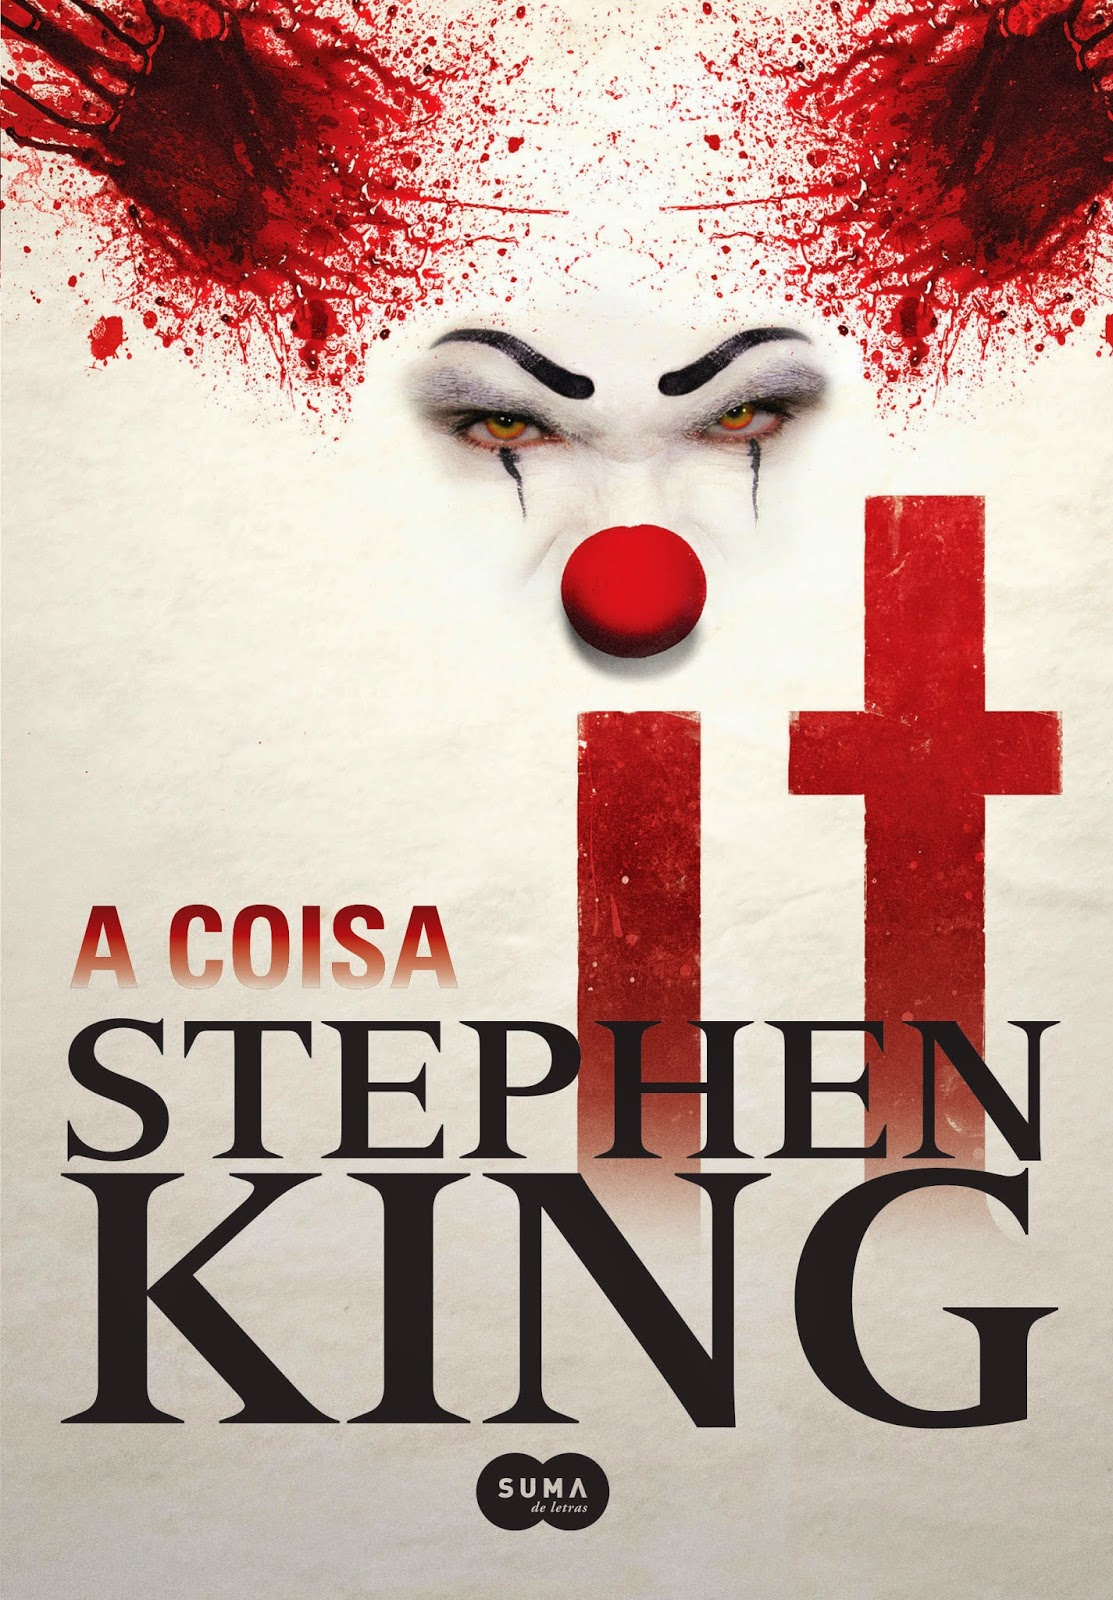 It, A Coisa Stephen King